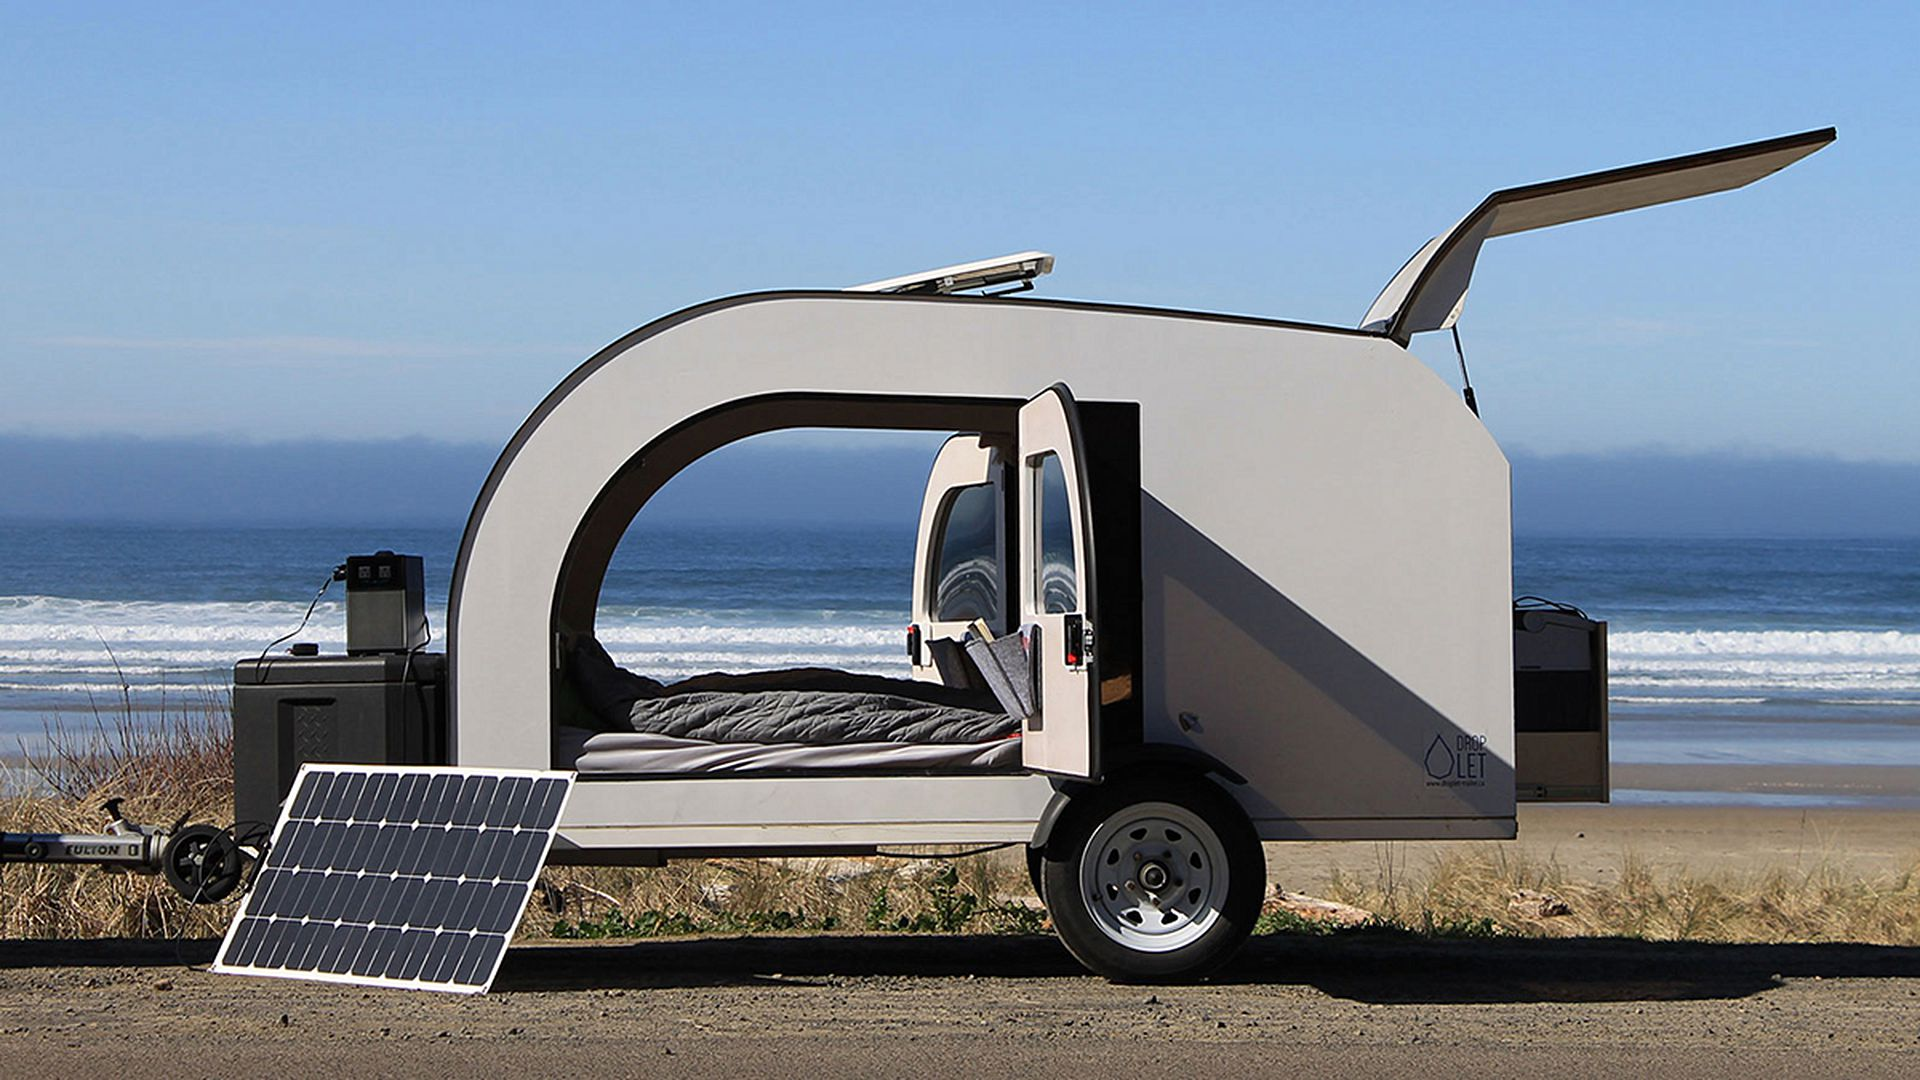 Rvs Campers And Trailers Curbed Marinesolarpanelrvsolarpanelgif Tiny Camper Trailer Can Be Towed By Almost Any Car